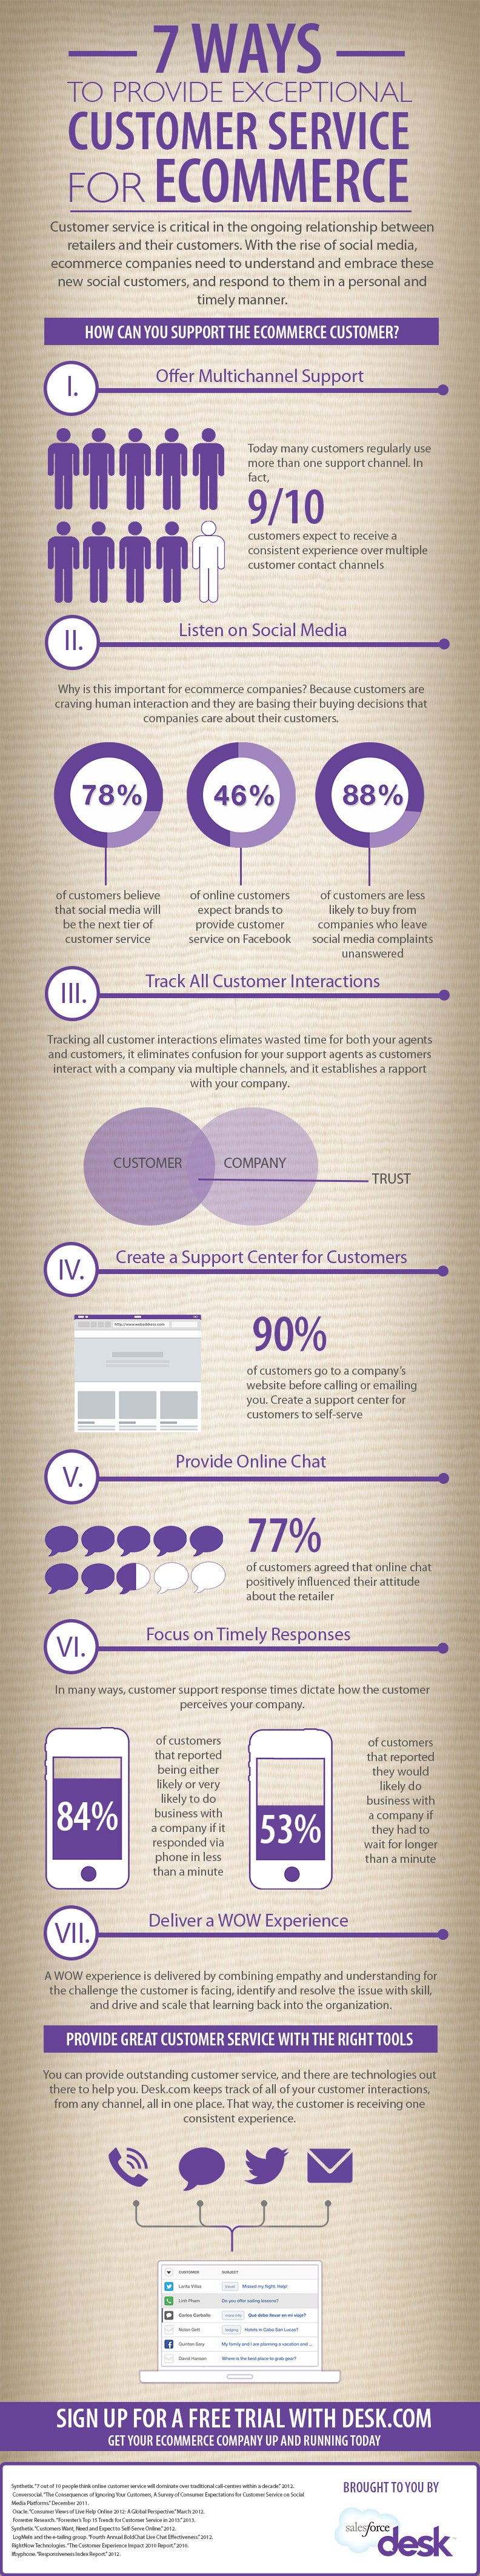 7 Ways to Provide Exceptional Customer Service for Ecommerce (Infographic)